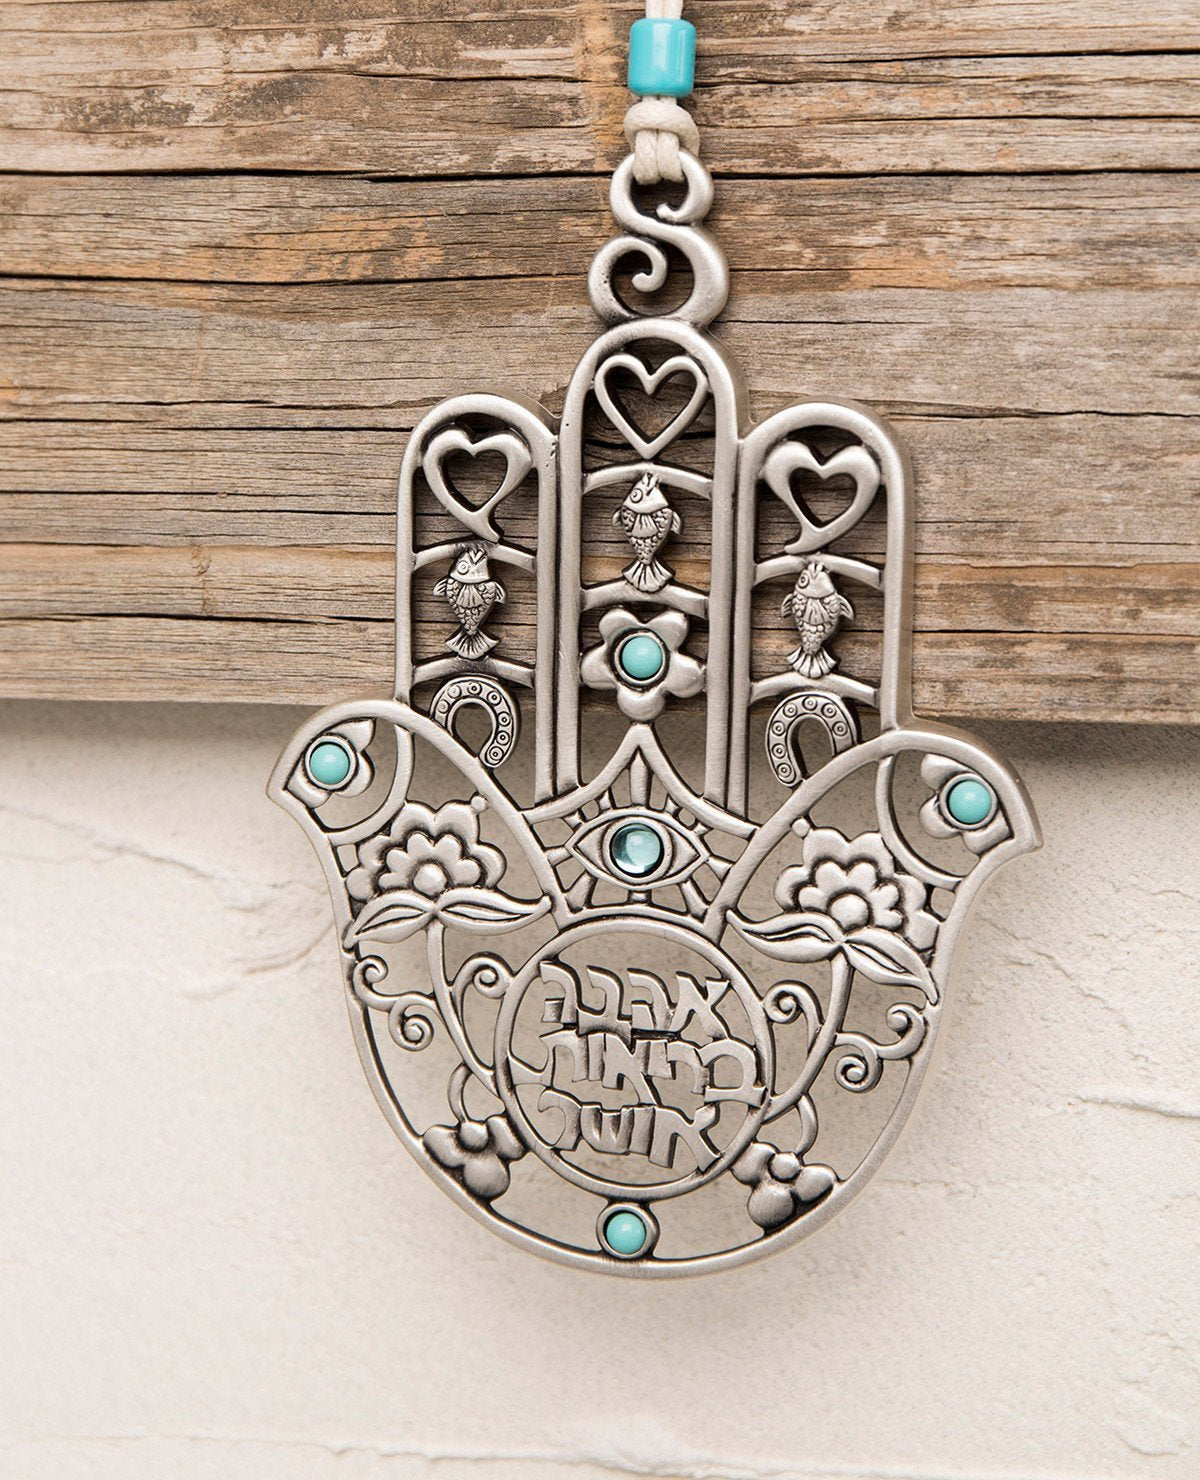 A Hamsa hanging wall ornament, gently designed and full of presence. The more you look at it the more and more you discover details and motifs that intensify its beauty. You can find motifs of a heart, a horseshoe, and a fish... Can you spot the birds? The special cut which creates a variety of different shapes, the intertwined flowers, the turquoise colored stones... in short, a medley of designs and blessings in words and symbols. A gift you will want to gaze at more and more and give again and again. The